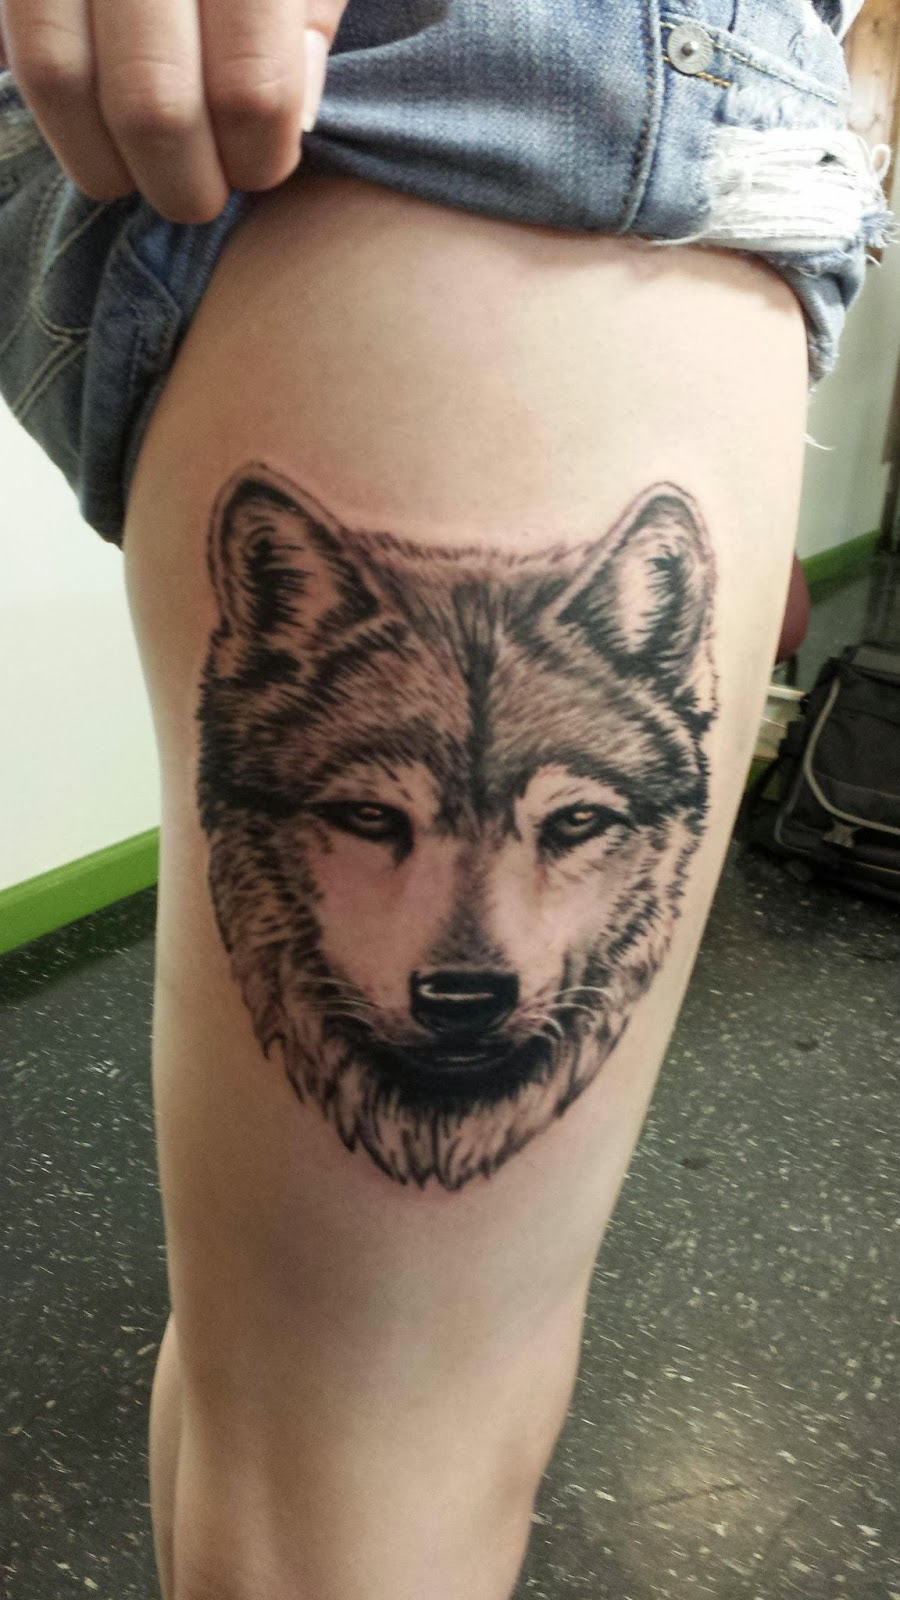 Girl Shows Off Her Wolf Head Tattoo On Thigh